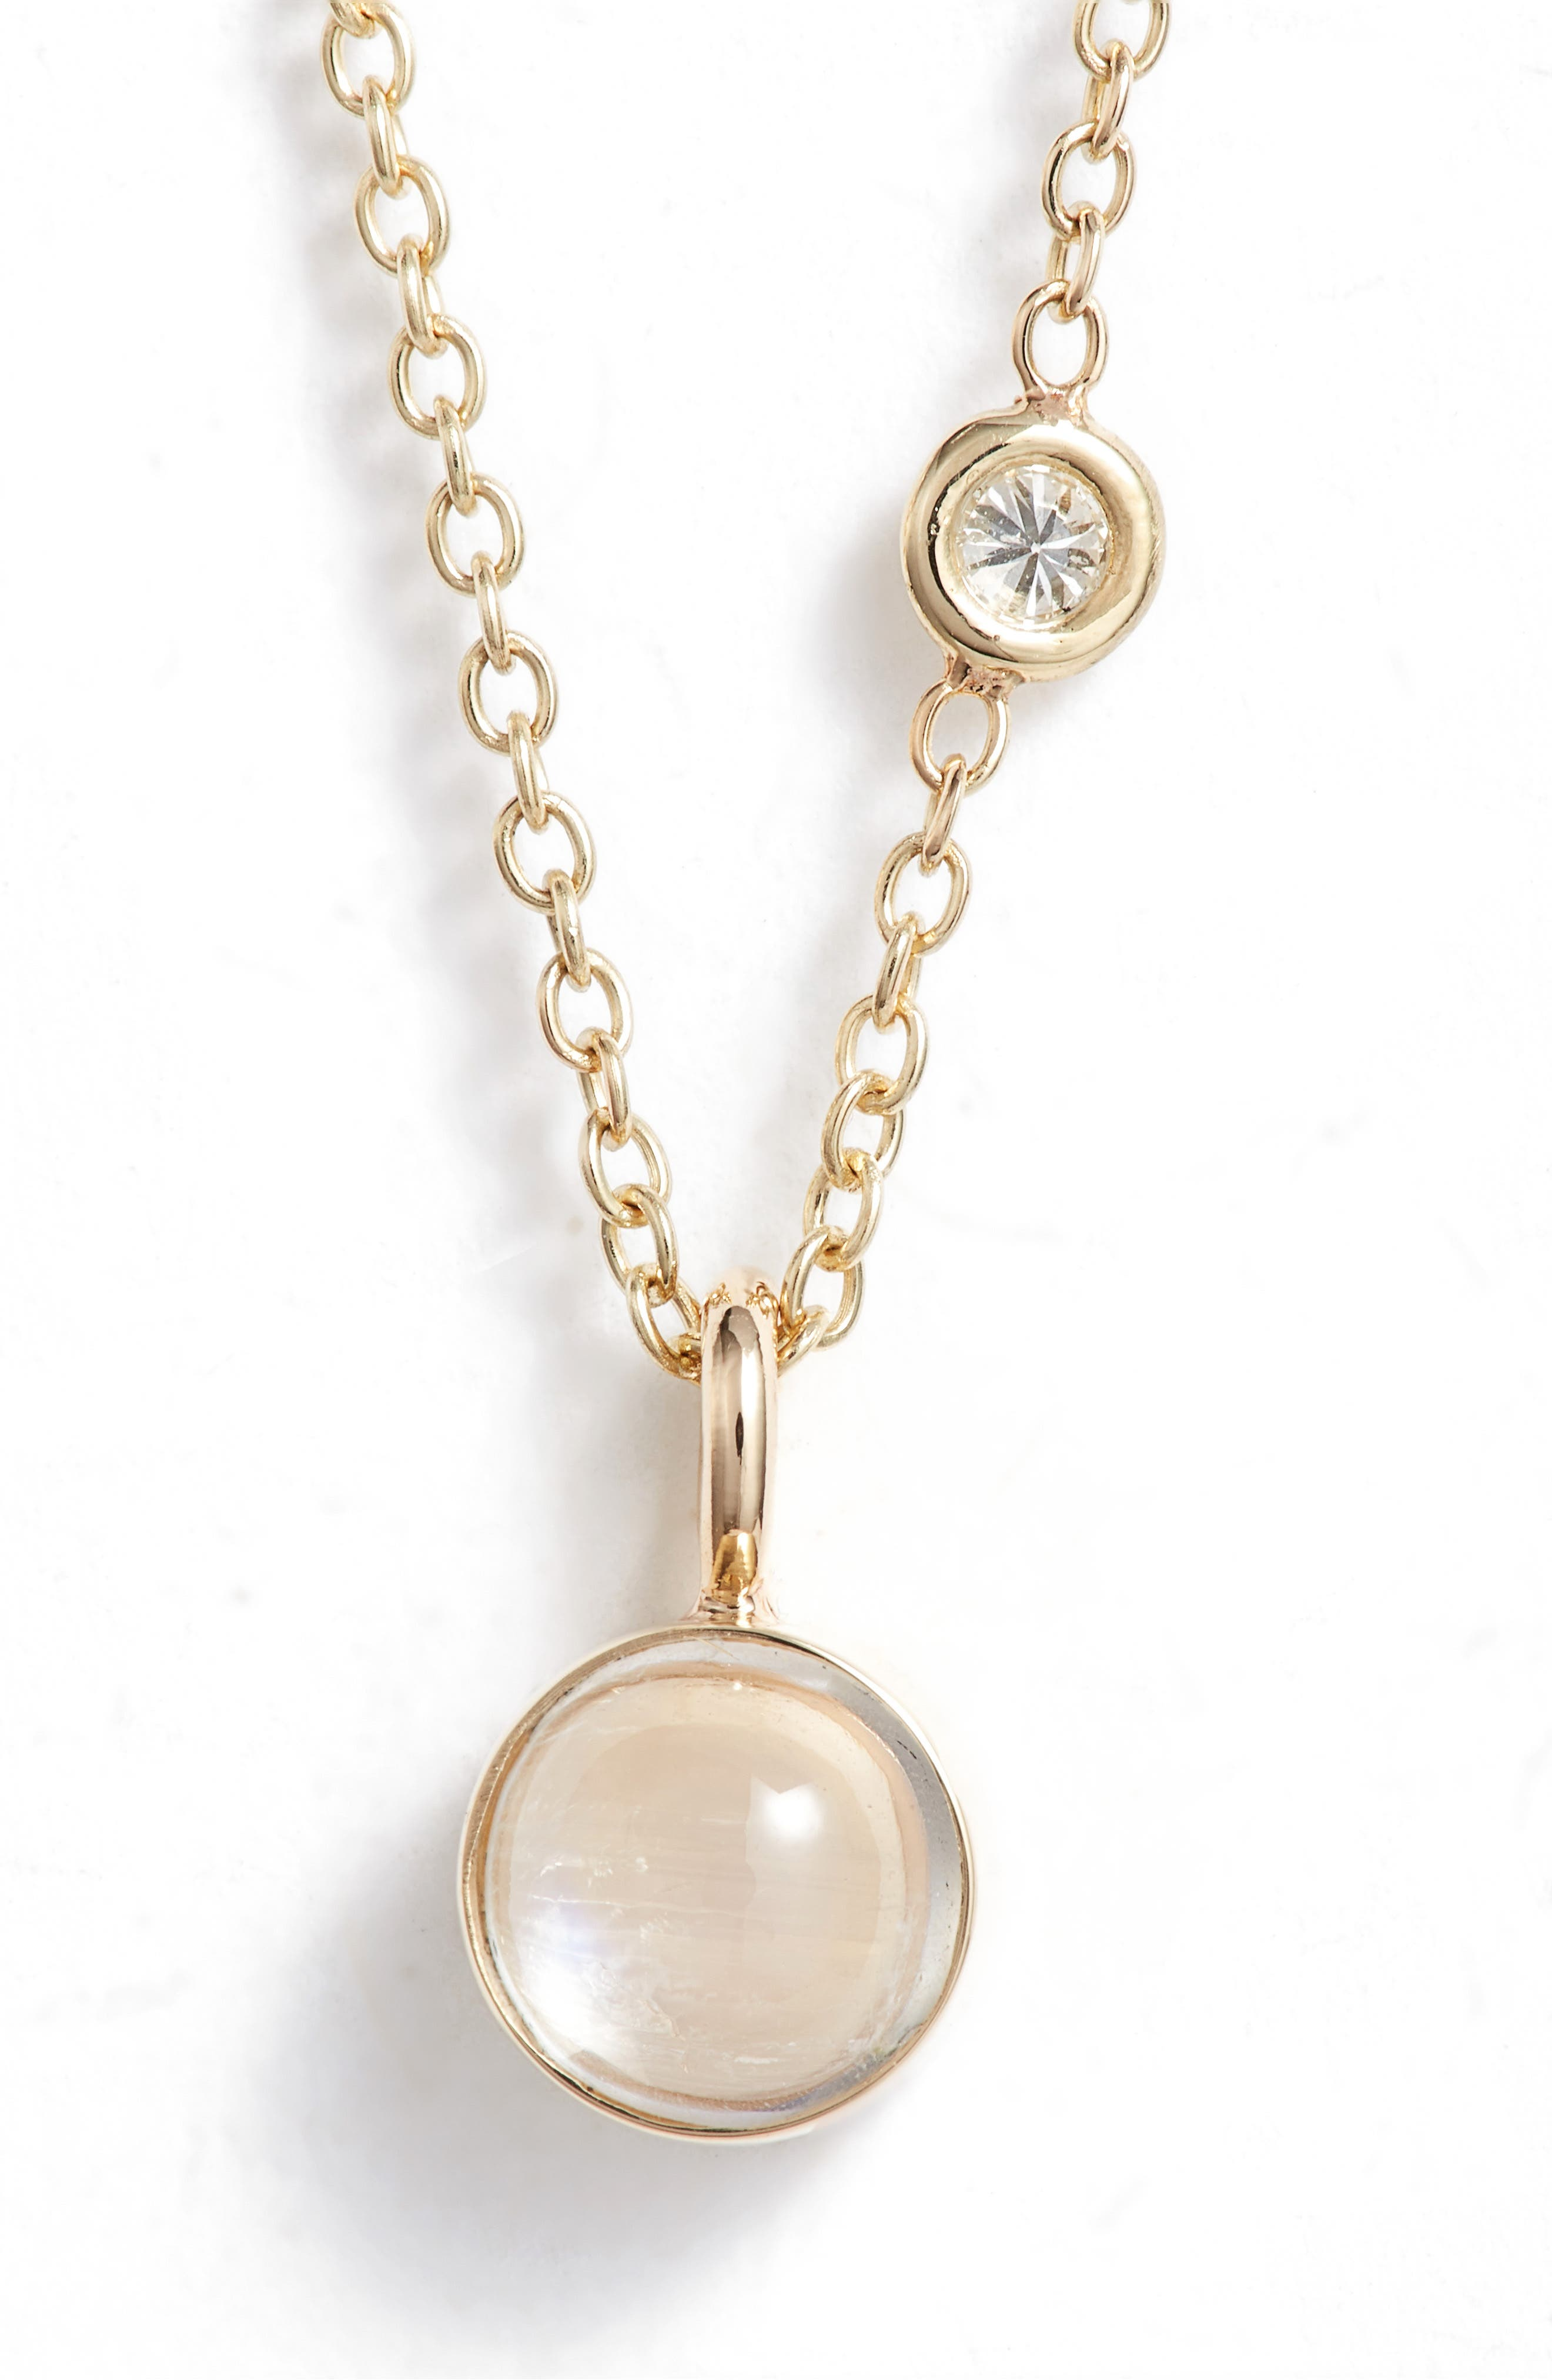 Moonstone & Diamond Pendant Necklace,                         Main,                         color, YELLOW GOLD/ MOONSTONE